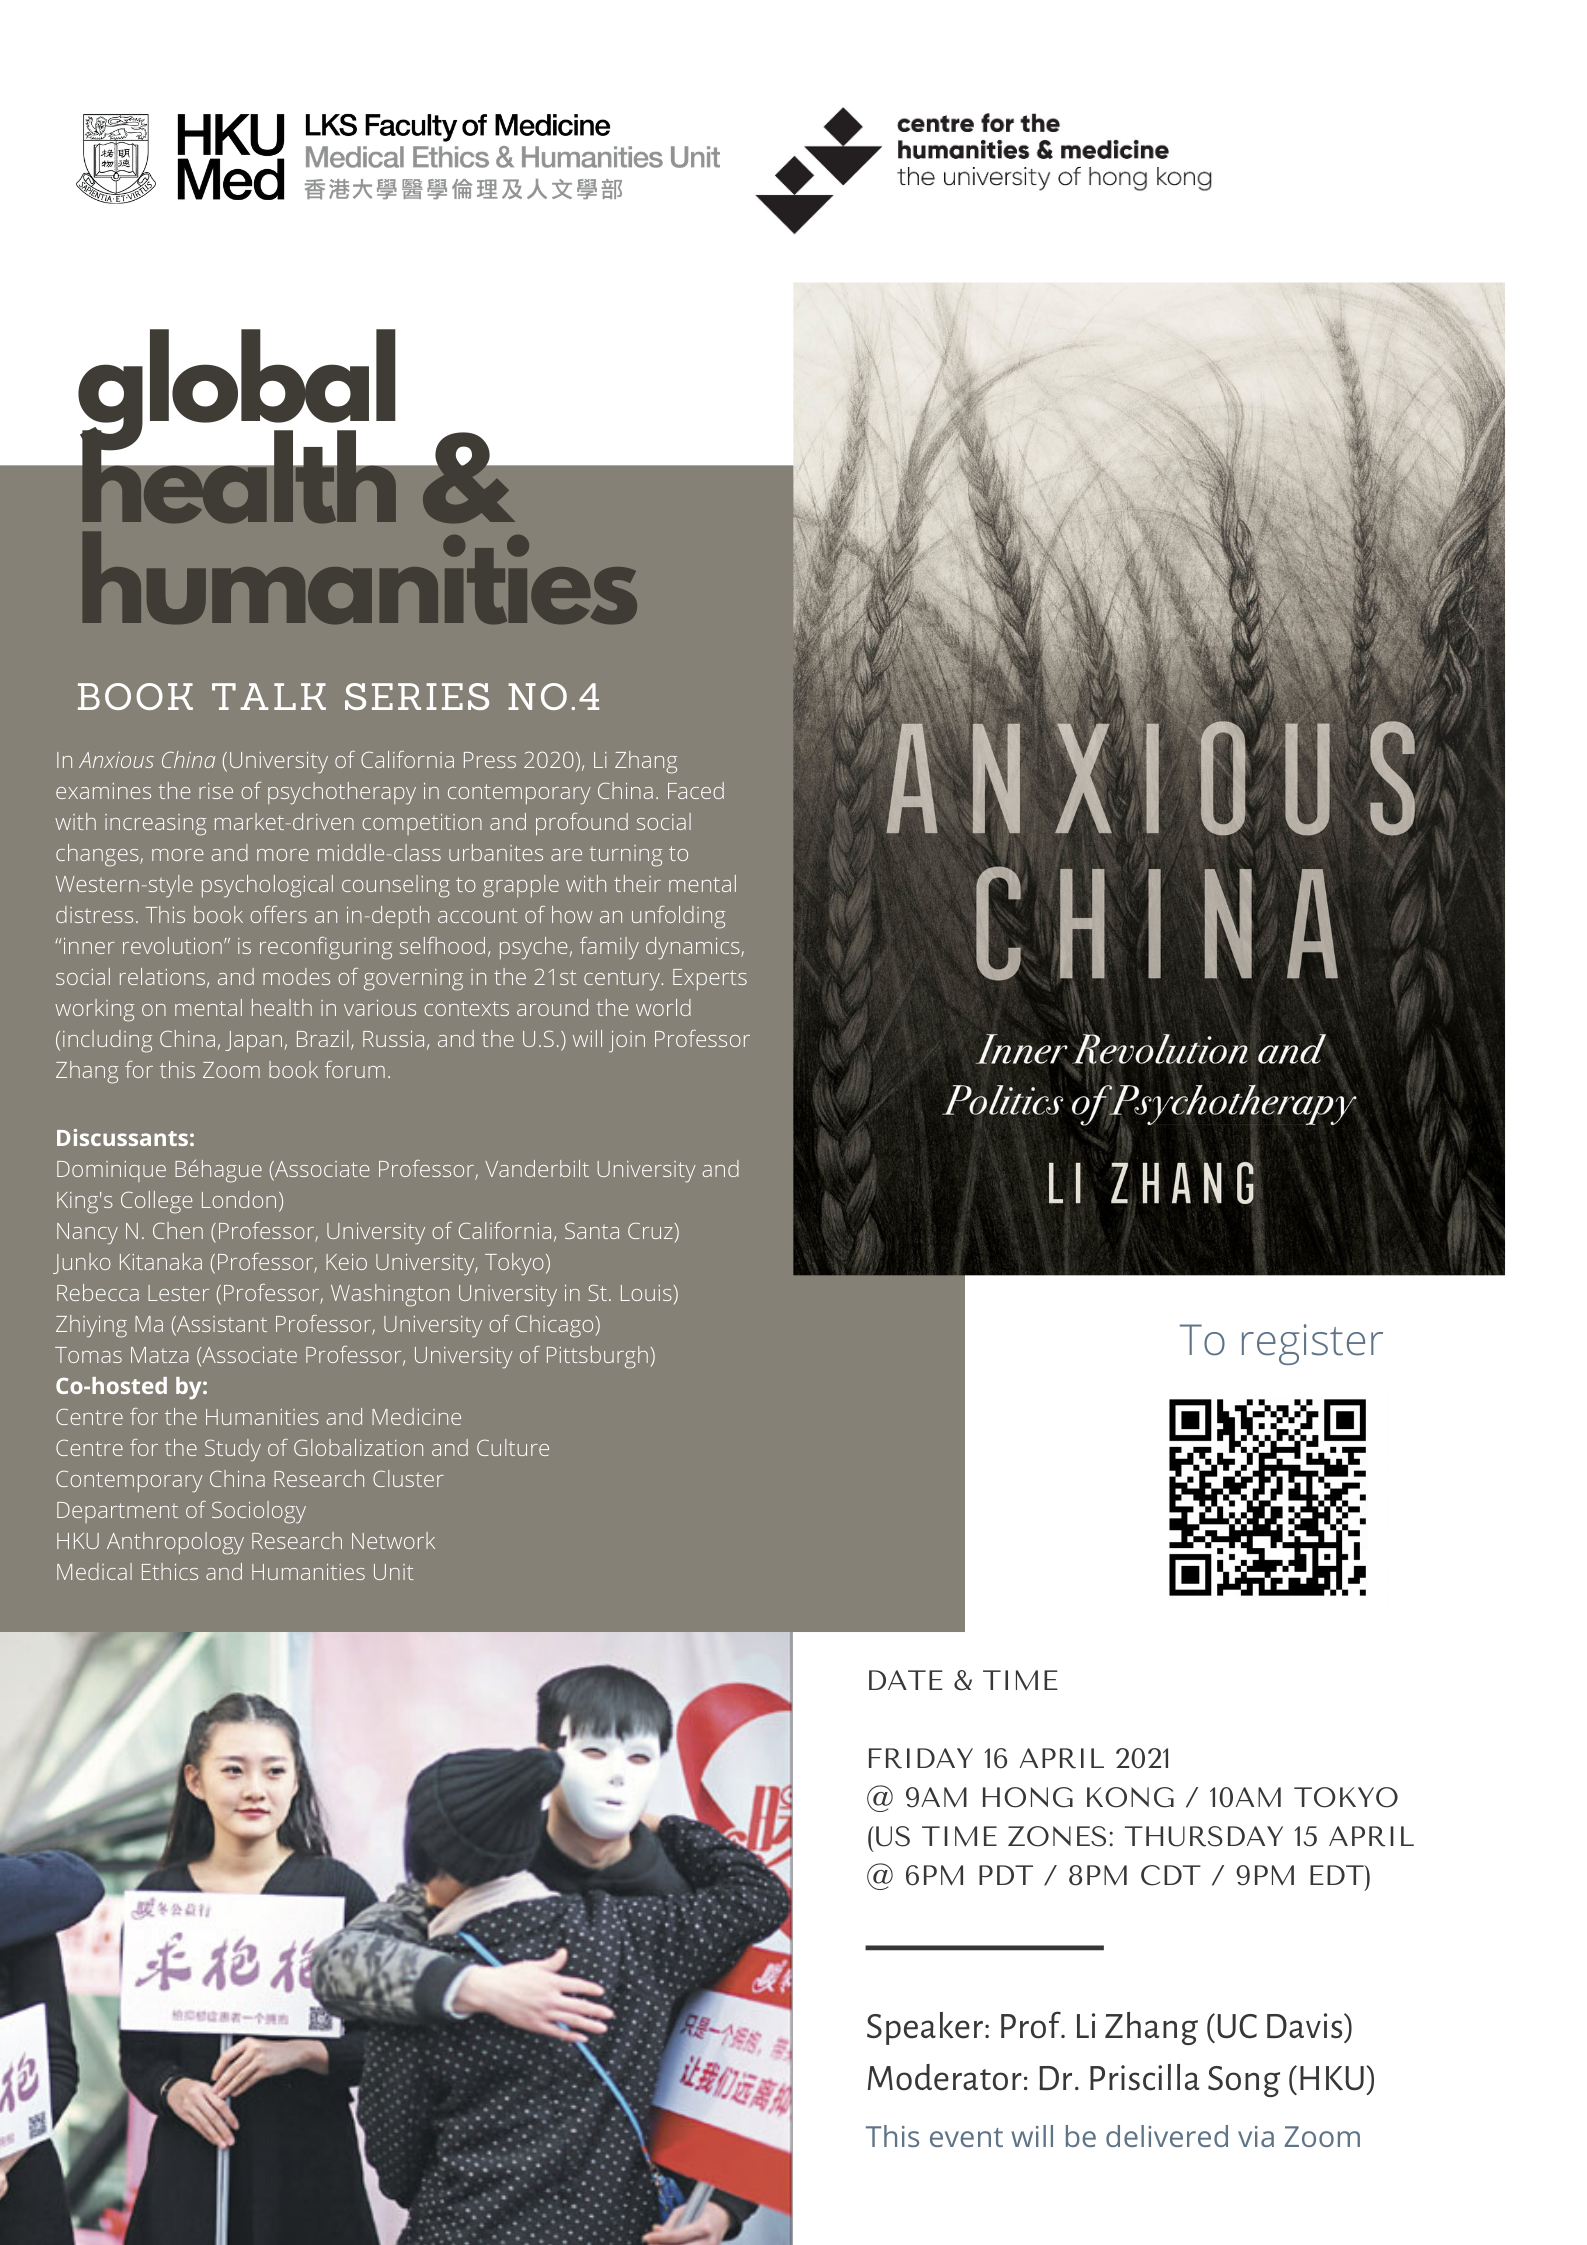 Book Talk Series No.4- Anxious China: Inner Revolution and Politics of Psychotherapy